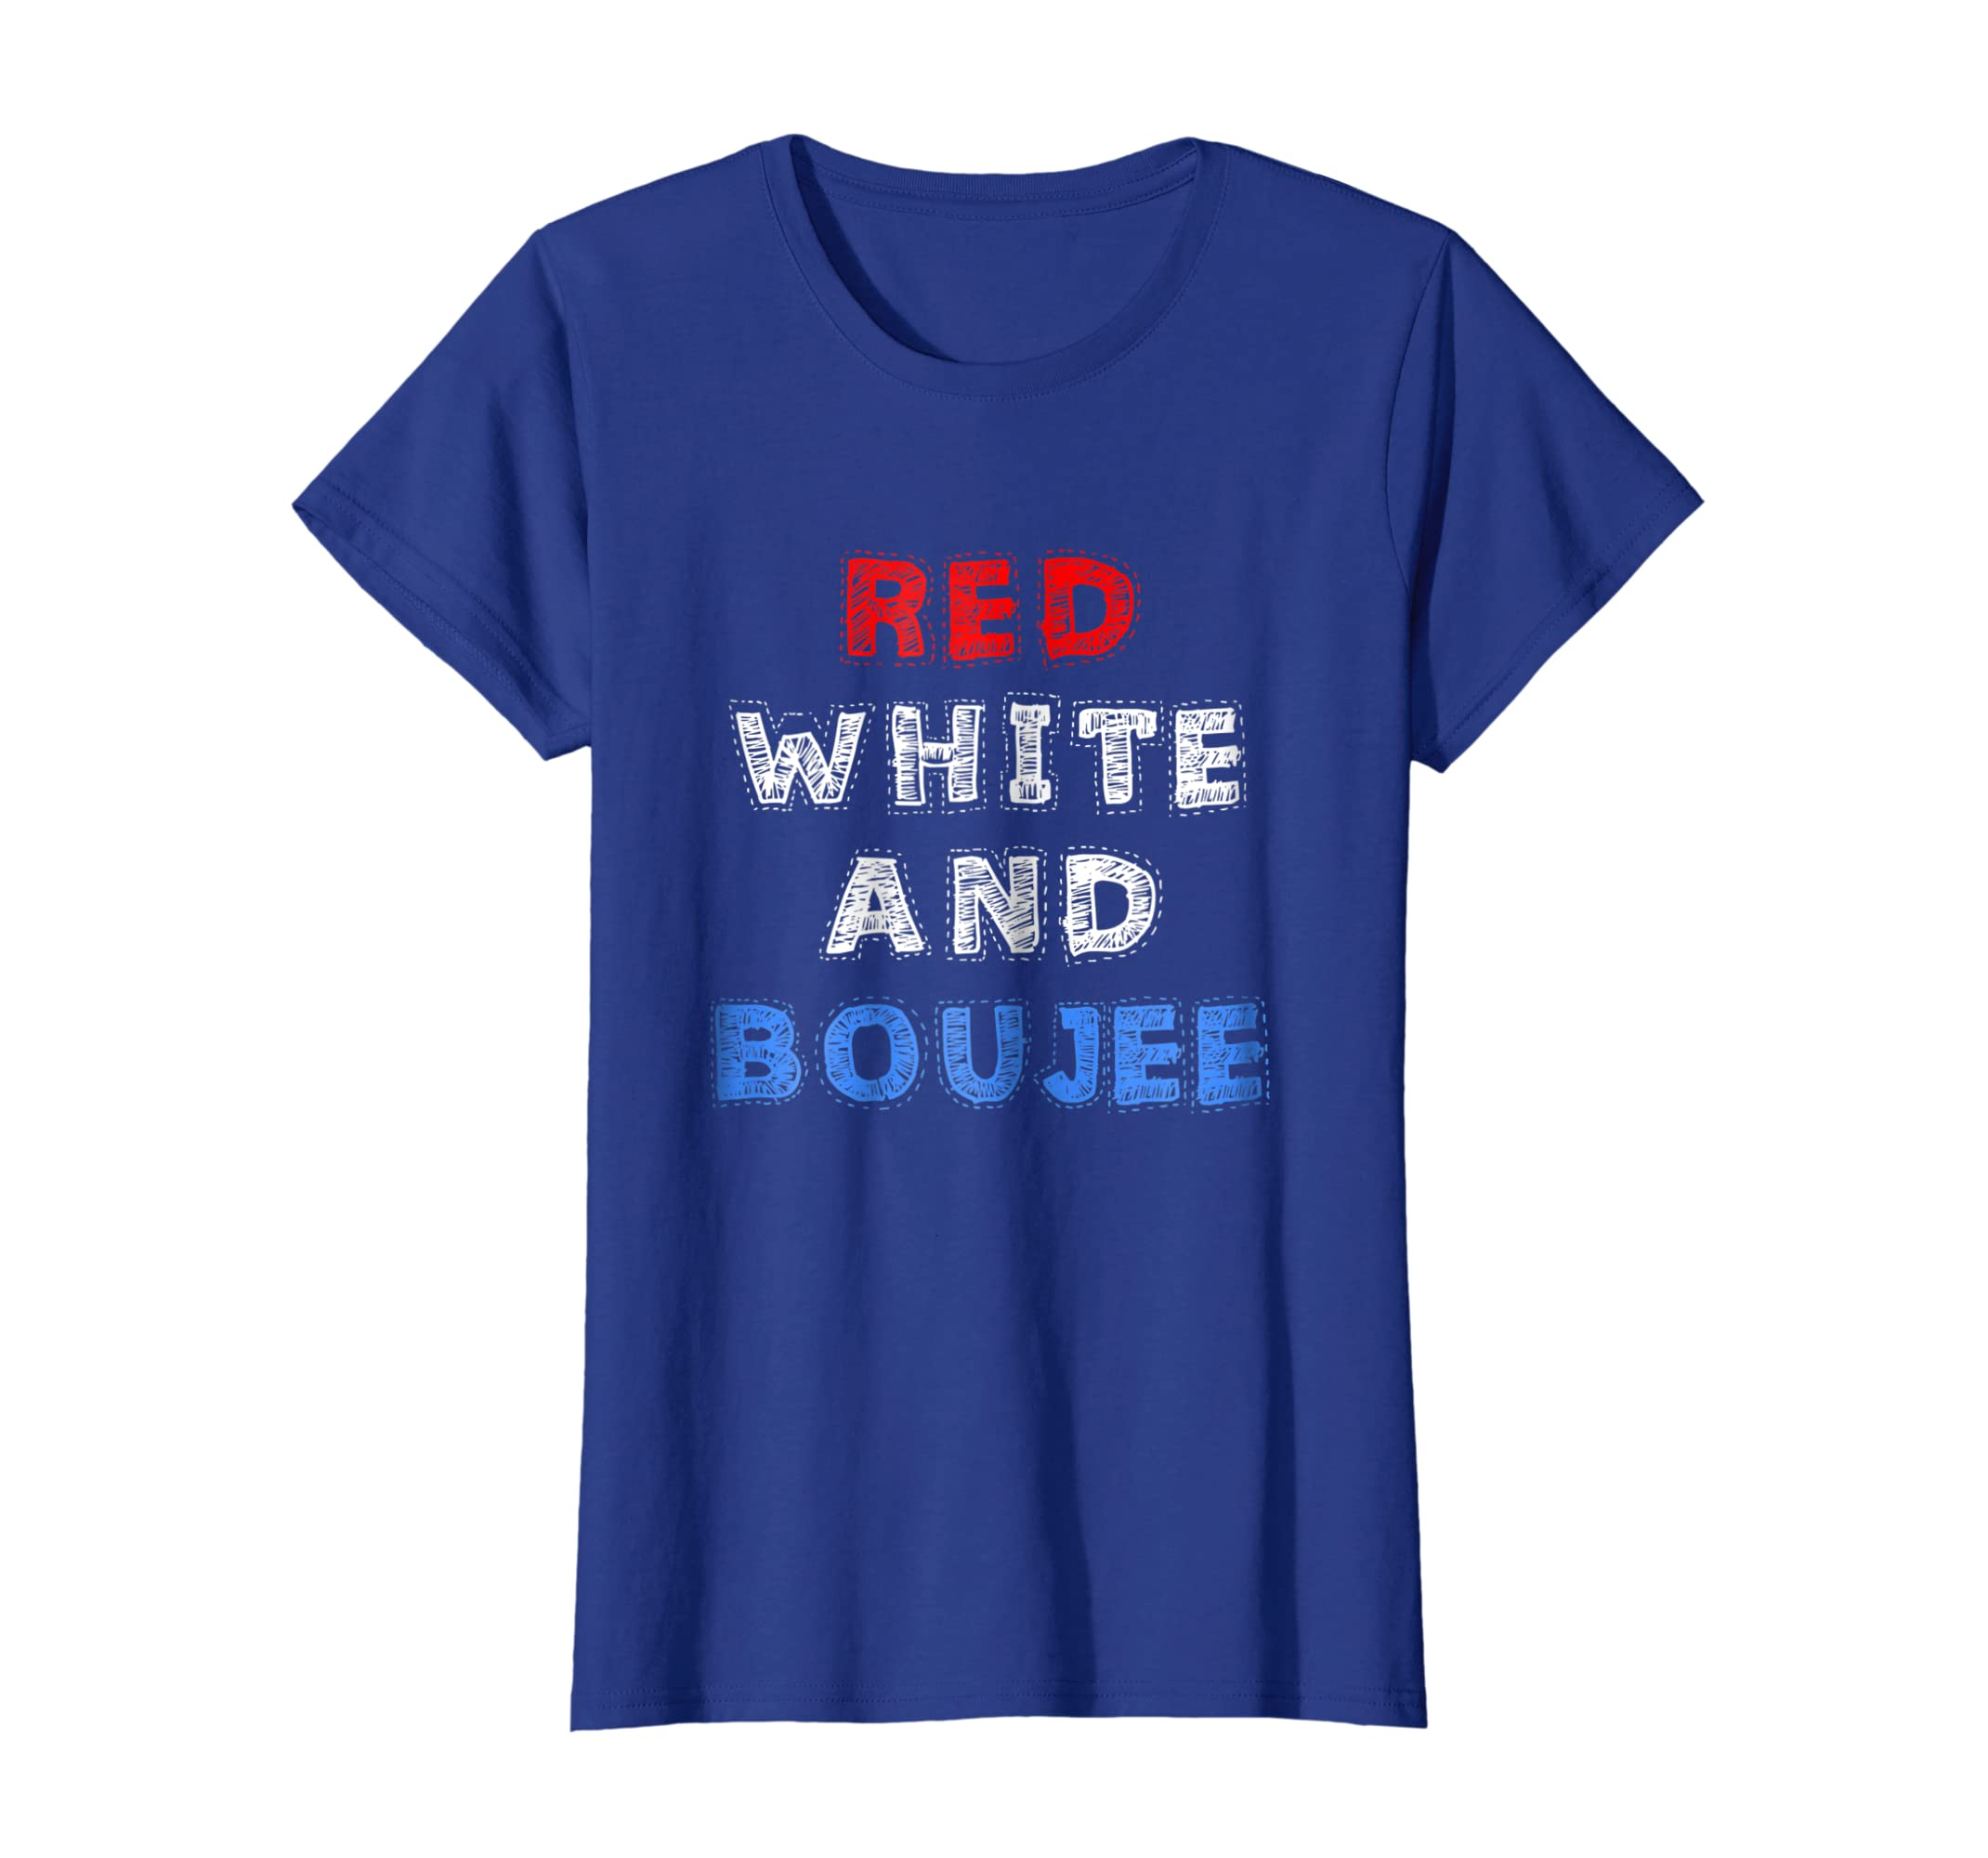 ba28f50ea Amazon.com: Red White and Boujee Funny 4th of July Party Shirt Patriotic:  Clothing